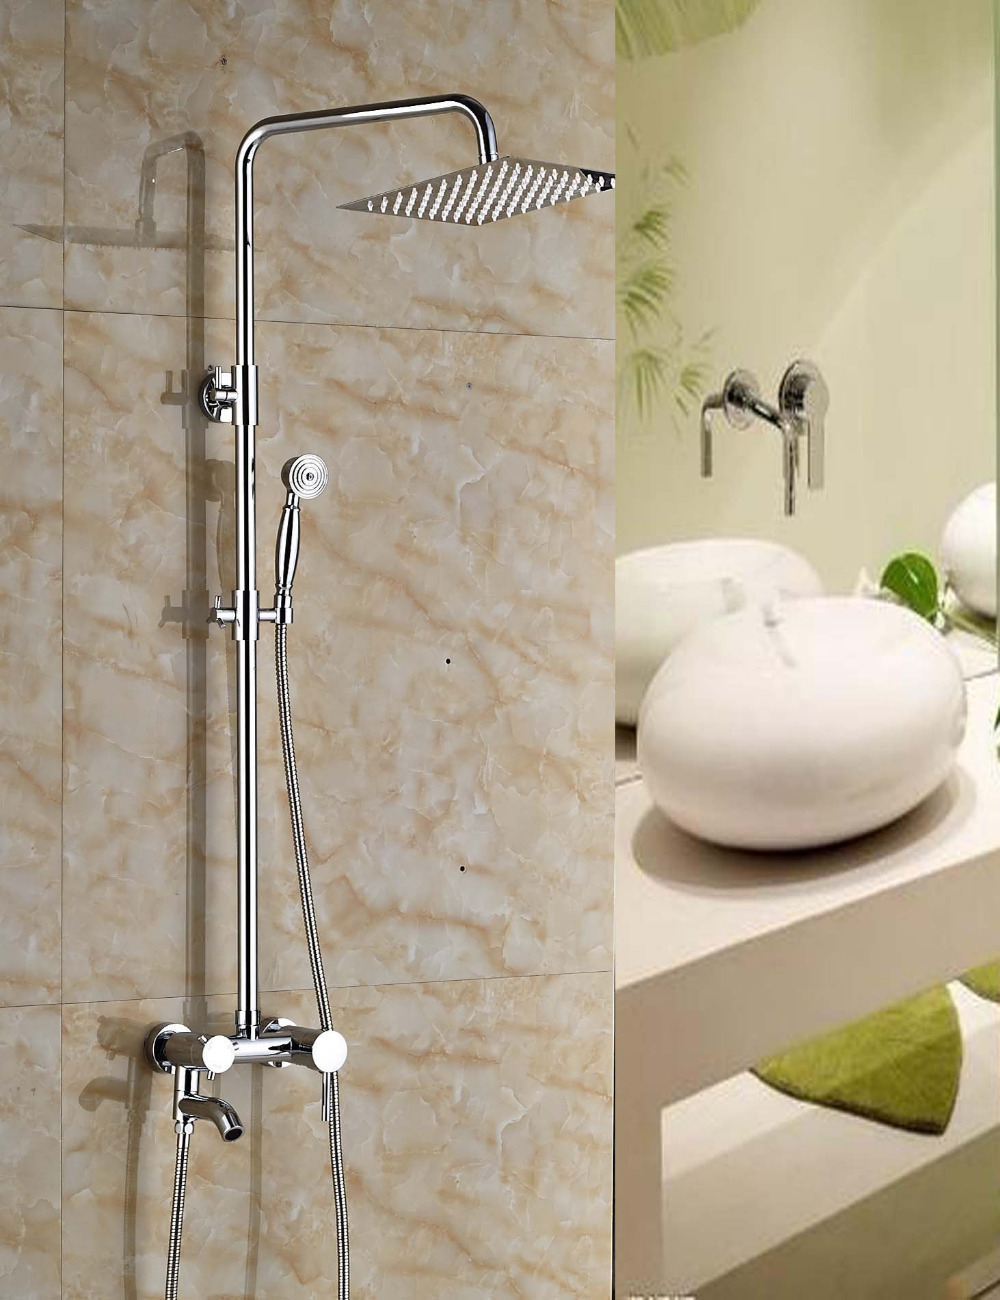 Wholesale And Retail Square Rainfall Chrome Brass Shower Head Tub Spout W/ Hand Shower Ceramic Valve Core Shower Faucet wholesale and retail promotion deck mounted chrome brass waterfall spout bathroom tub faucet w hand shower